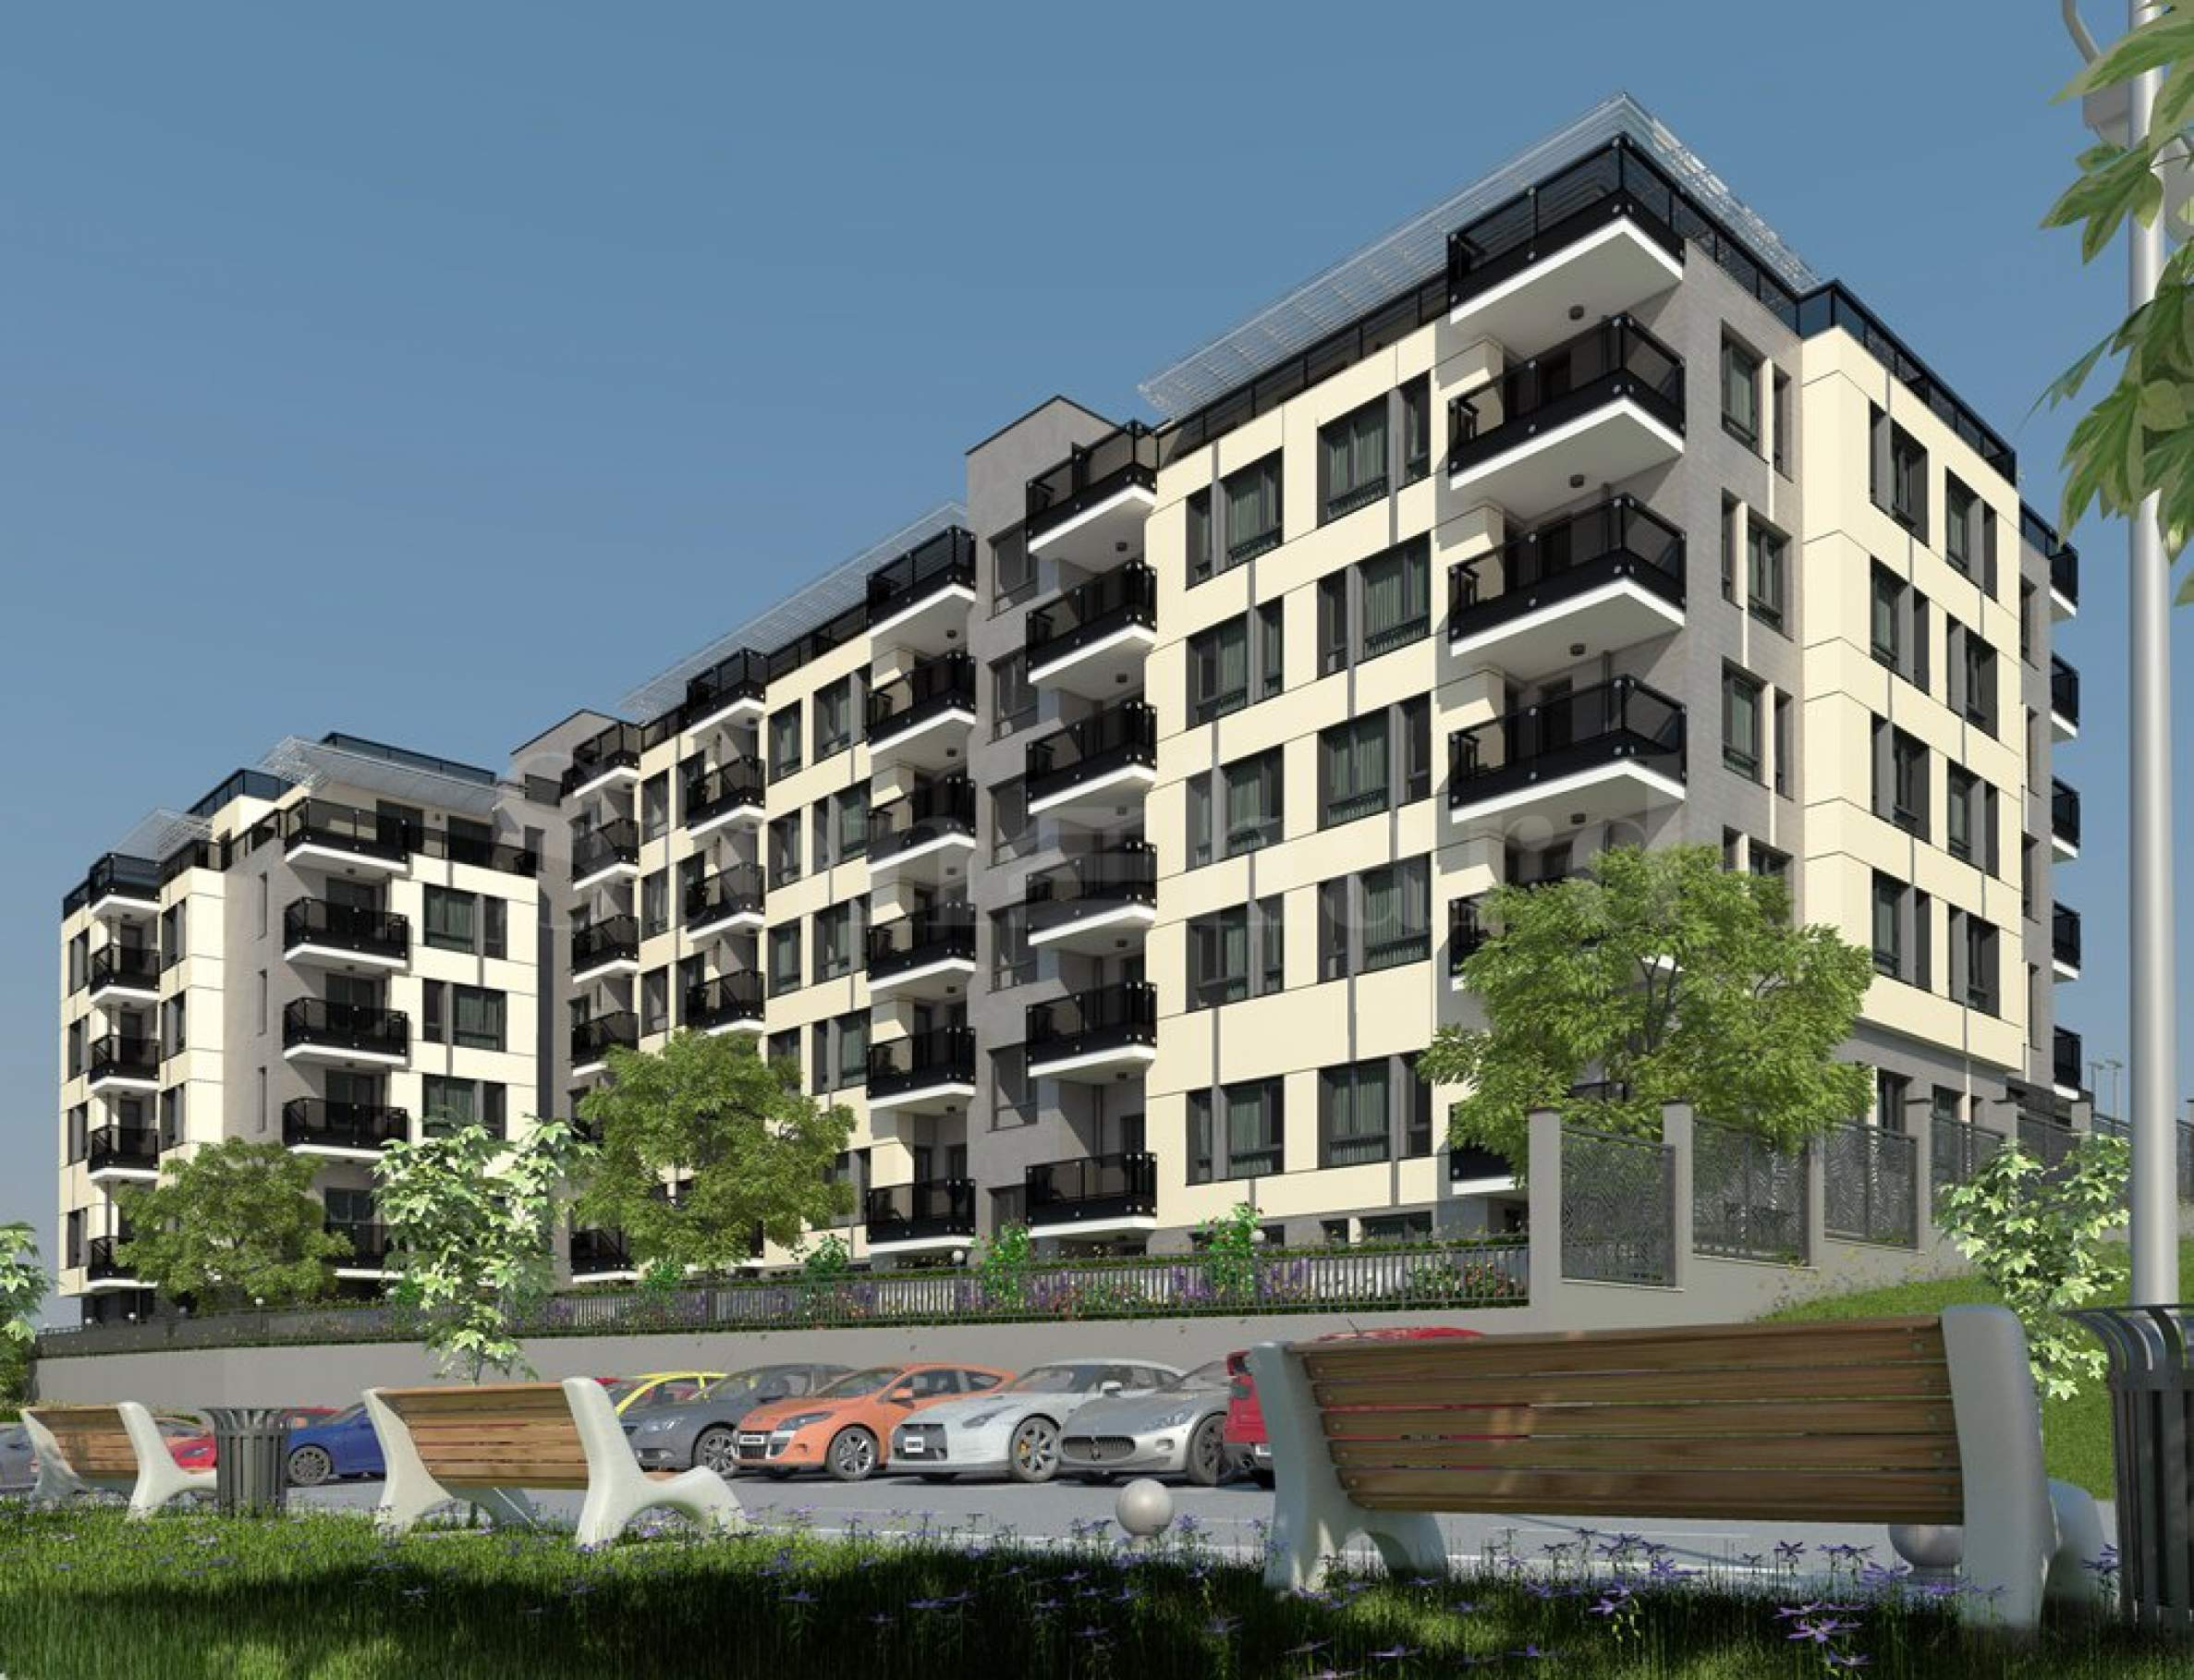 New apartments in communicative and desirable neighborhood1 - Stonehard